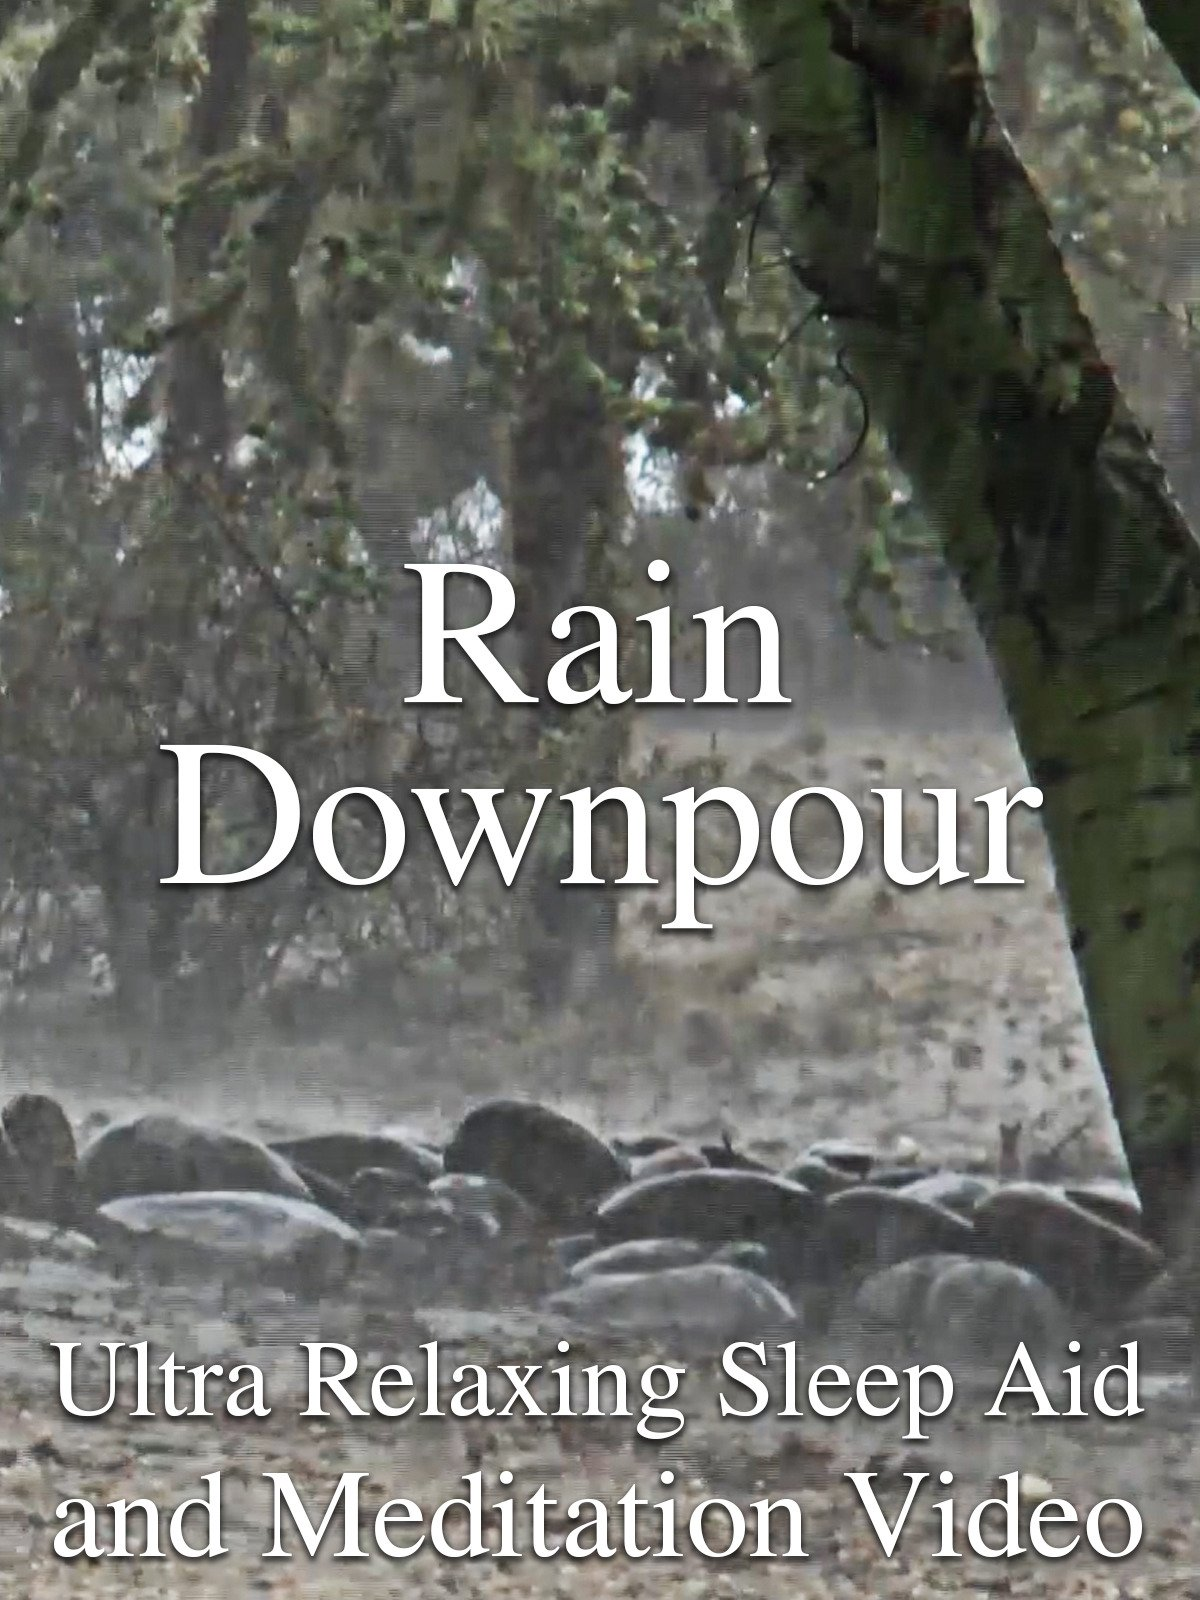 Rain Downpour Ultra Relaxing Sleep Aid and Meditation Video